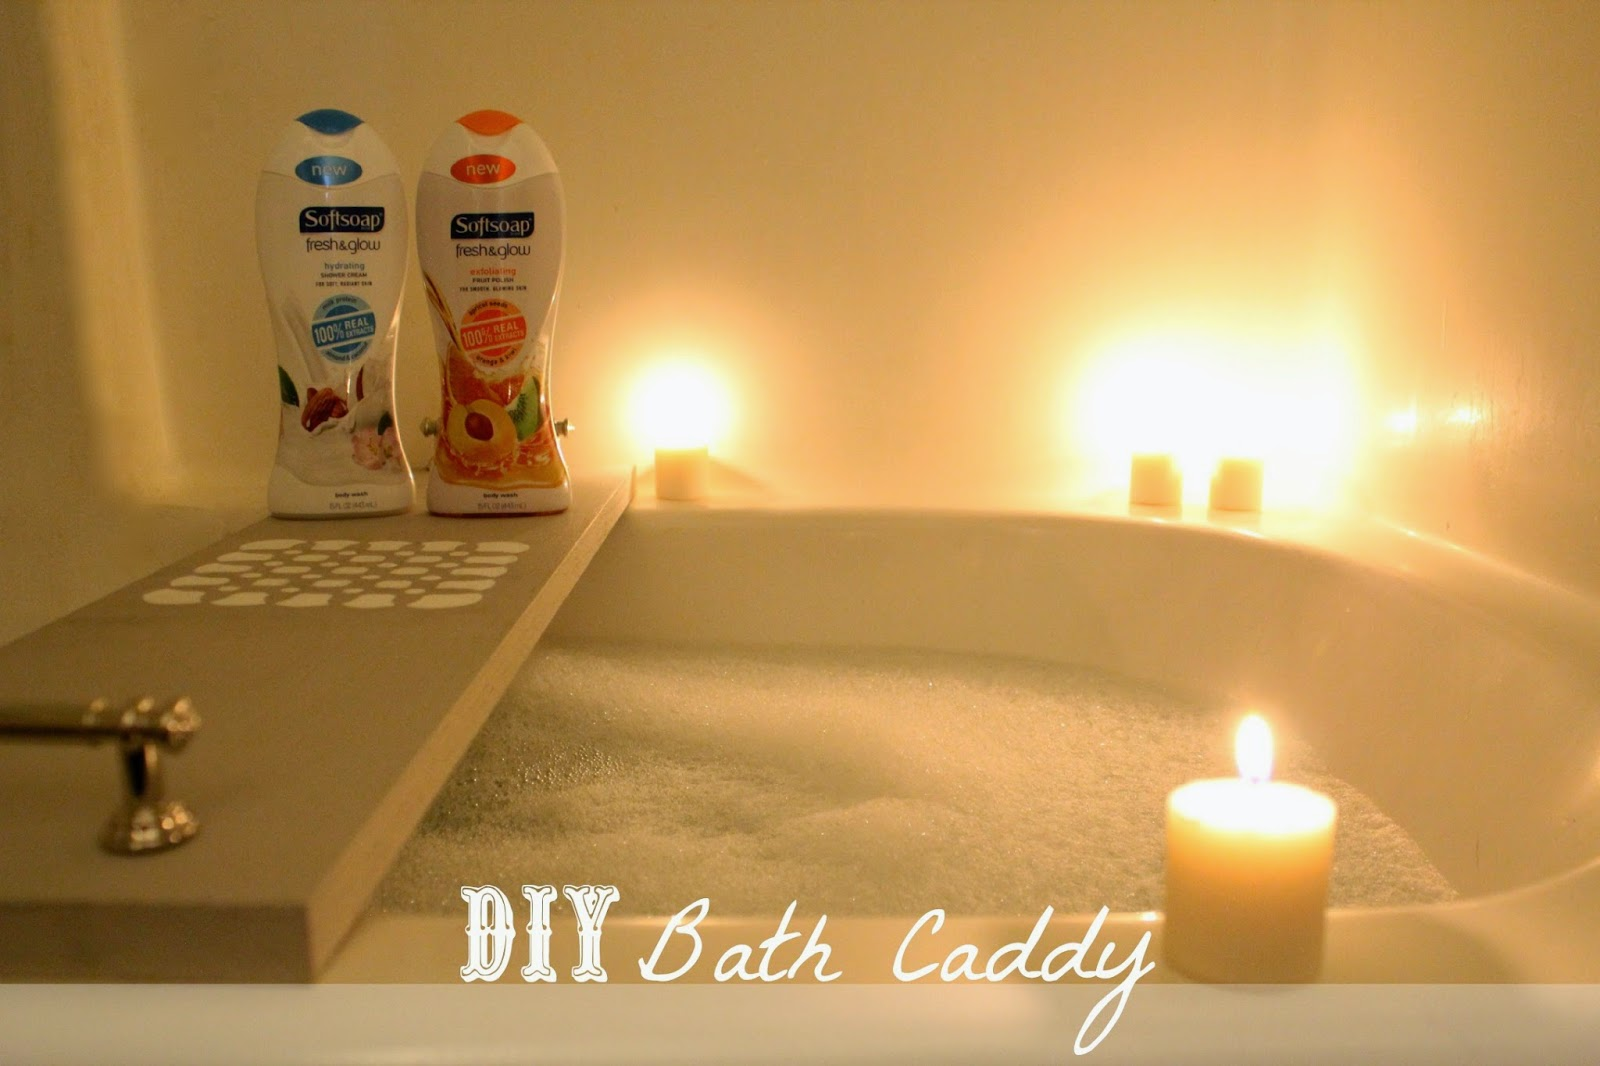 A Diy Bath Caddy To Compliment An Exfoliating And